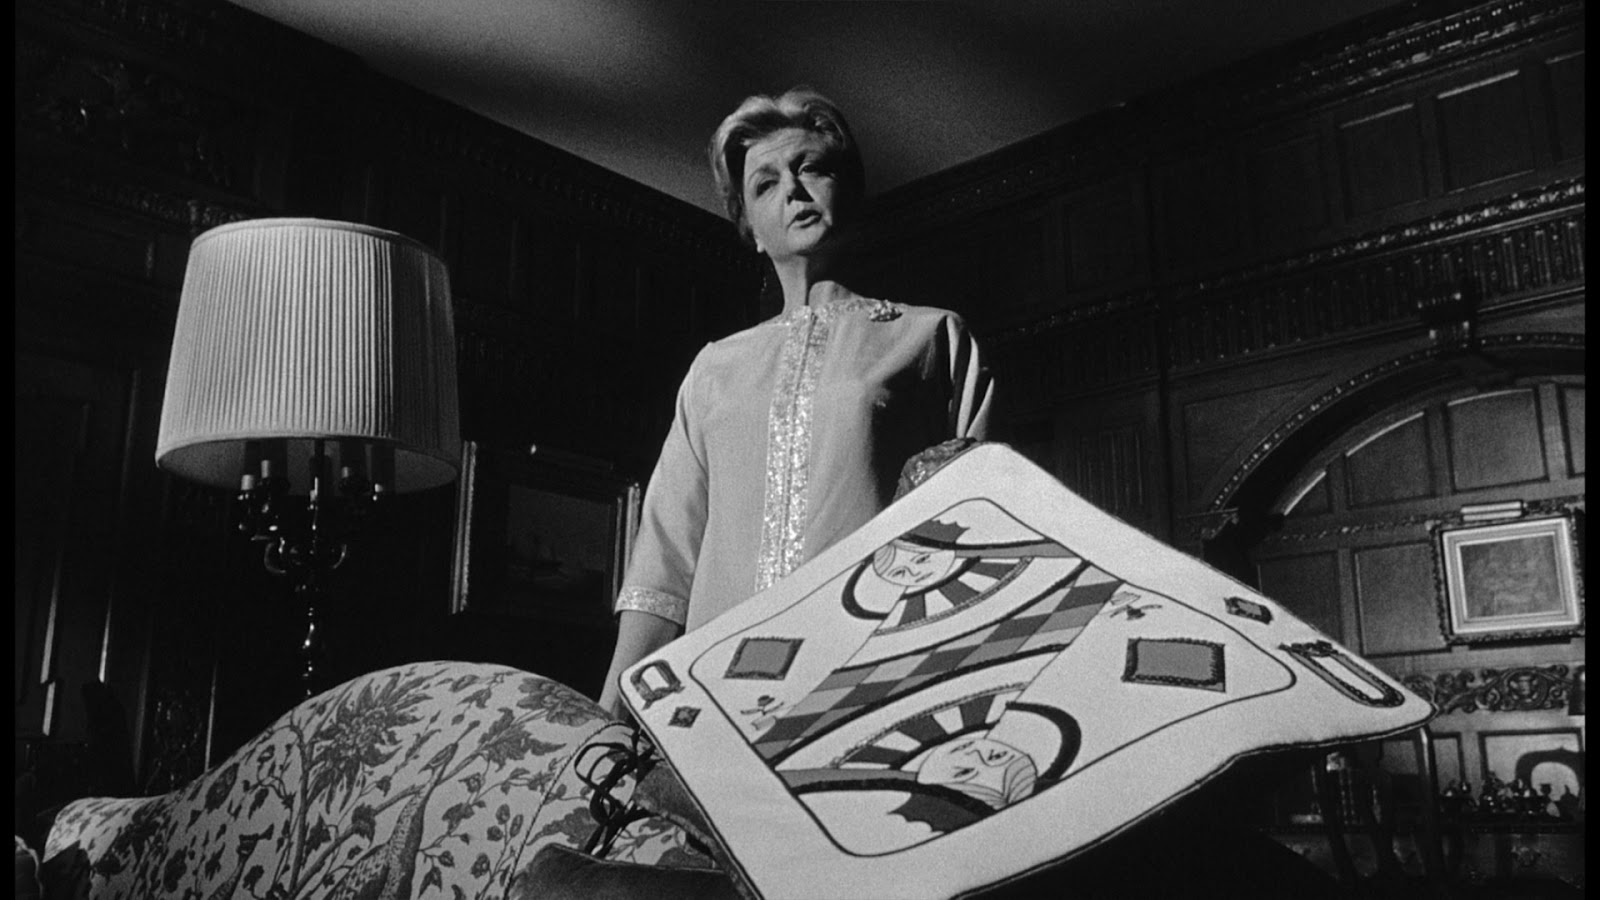 film review of the manchurian candidate Despite rave critical reviews, the manchurian candidate was not a huge box office hit on its initial release due largely to poor marketing by united artists many have said the studio simply did not know what kind of picture they had on their hands.